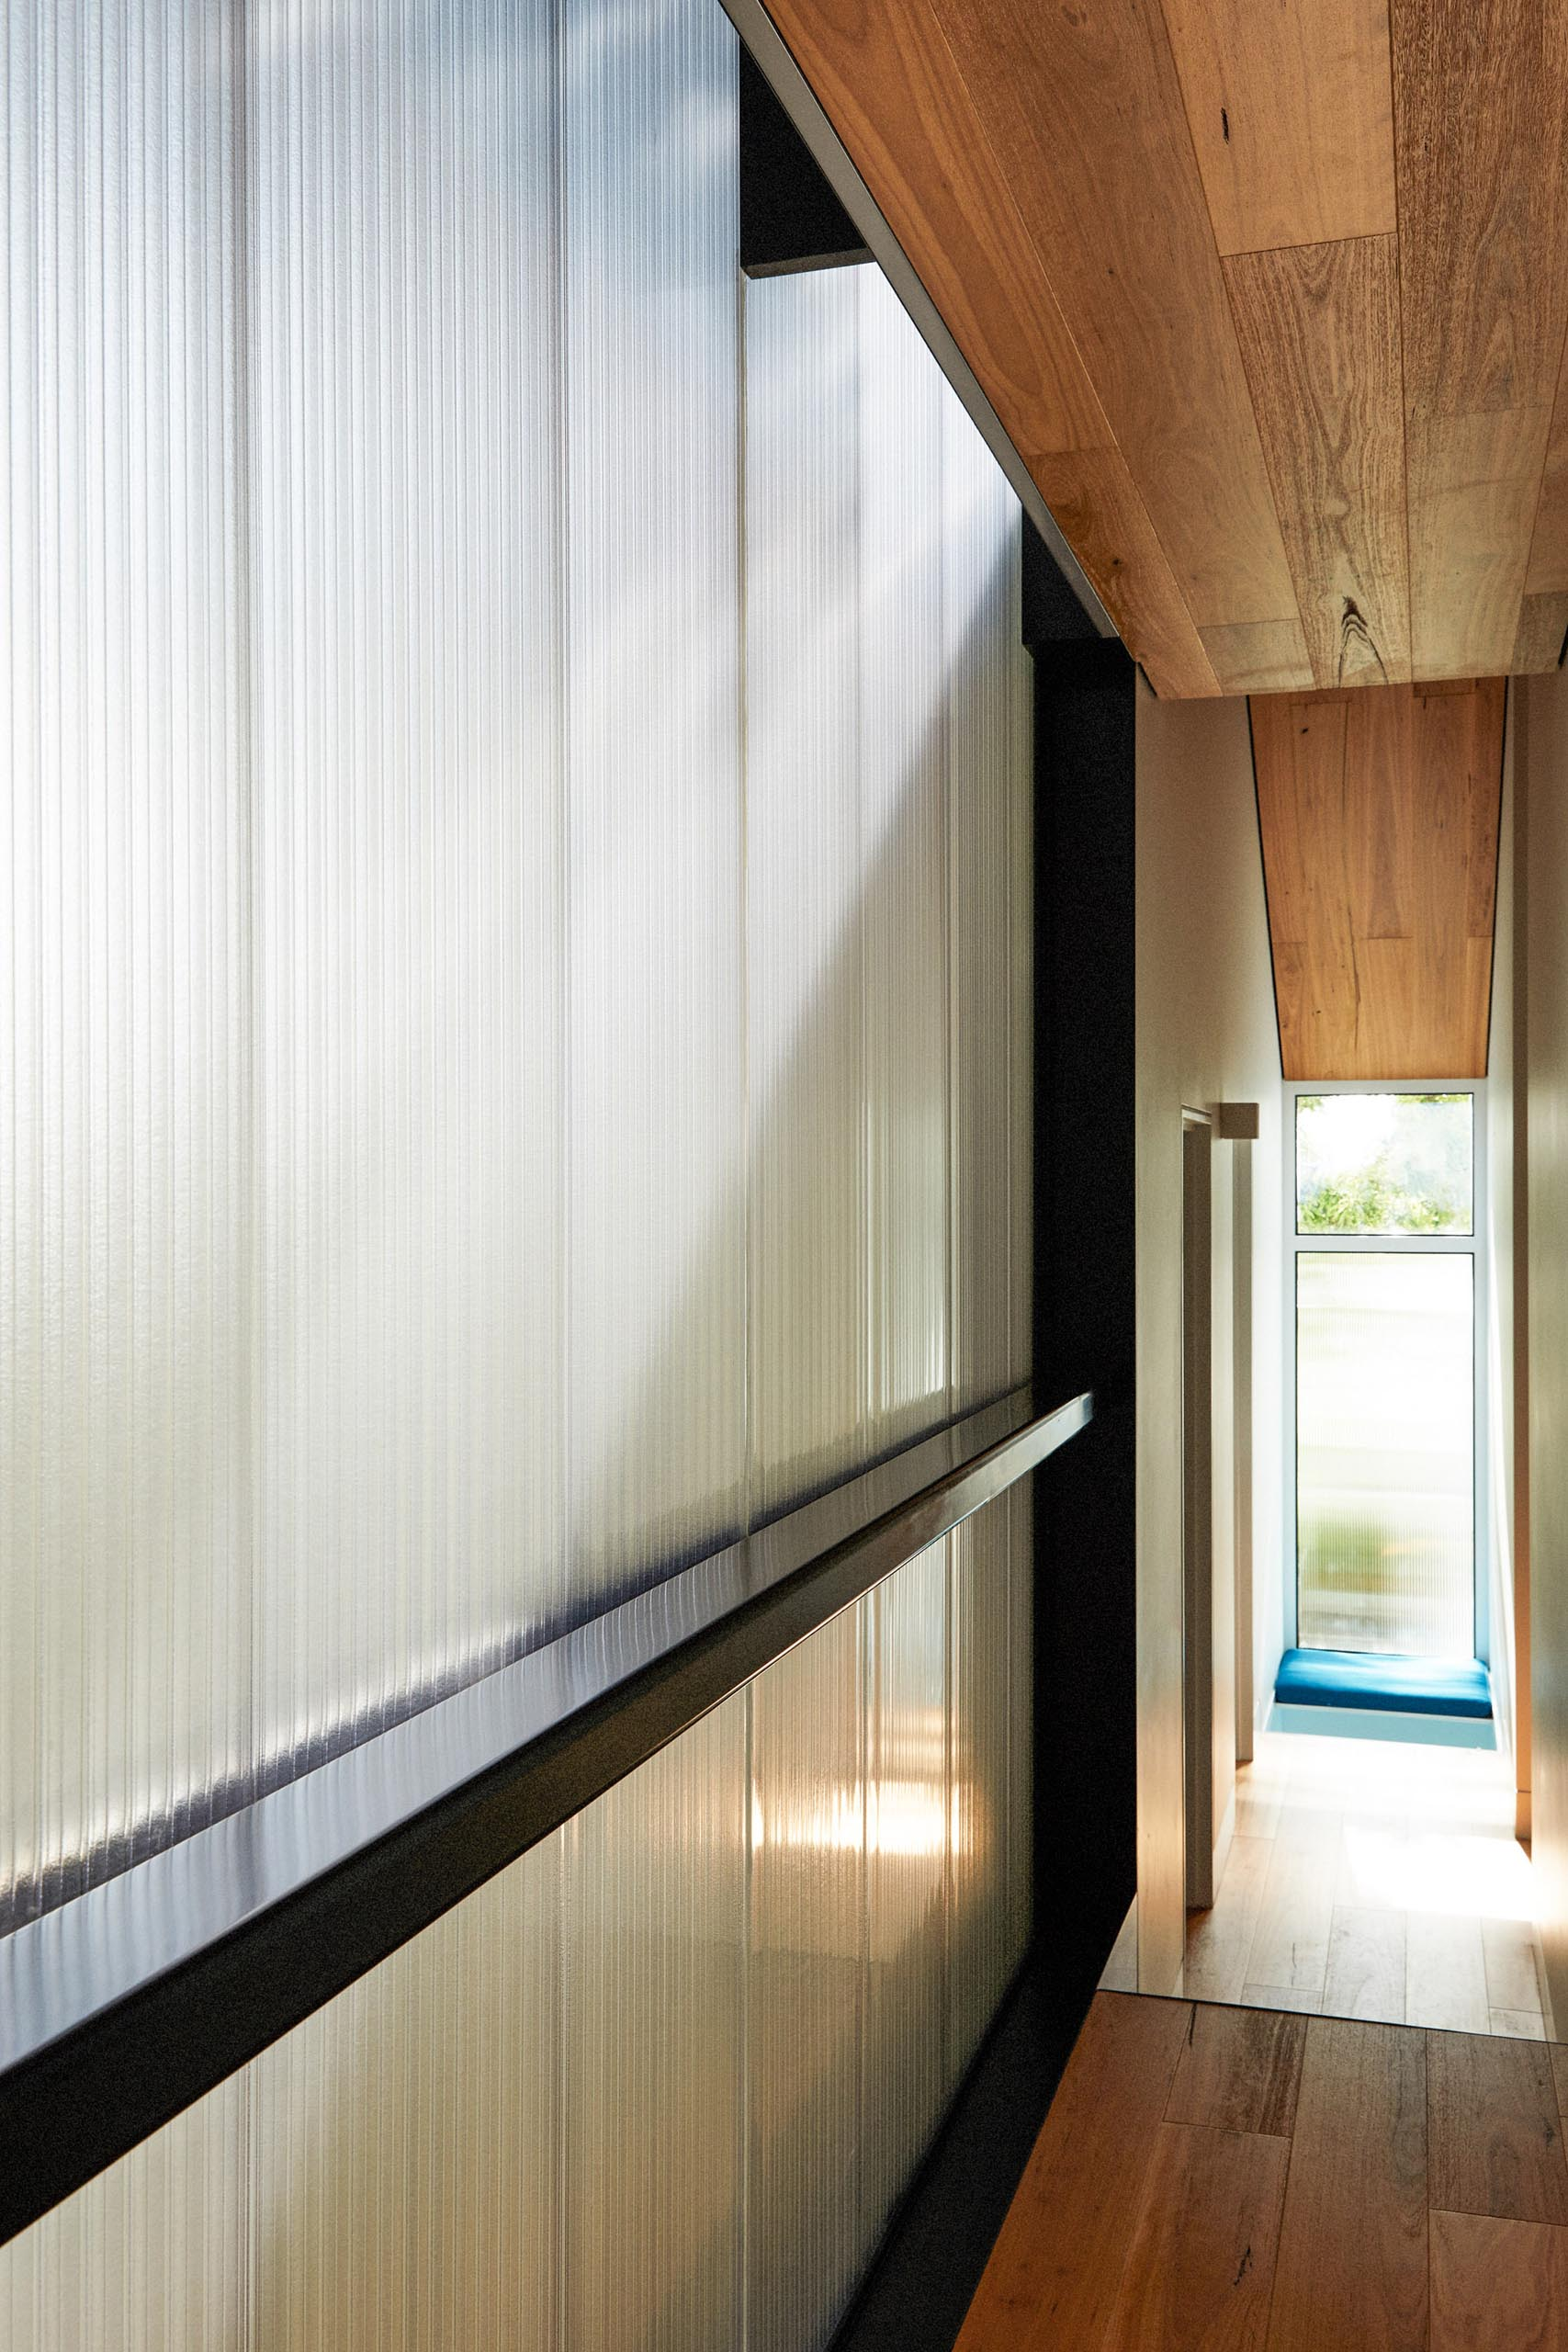 At the end of this hallway is a small seating niche by the window that includes upholstered benches, ideal for when the children want to have a quiet moment.